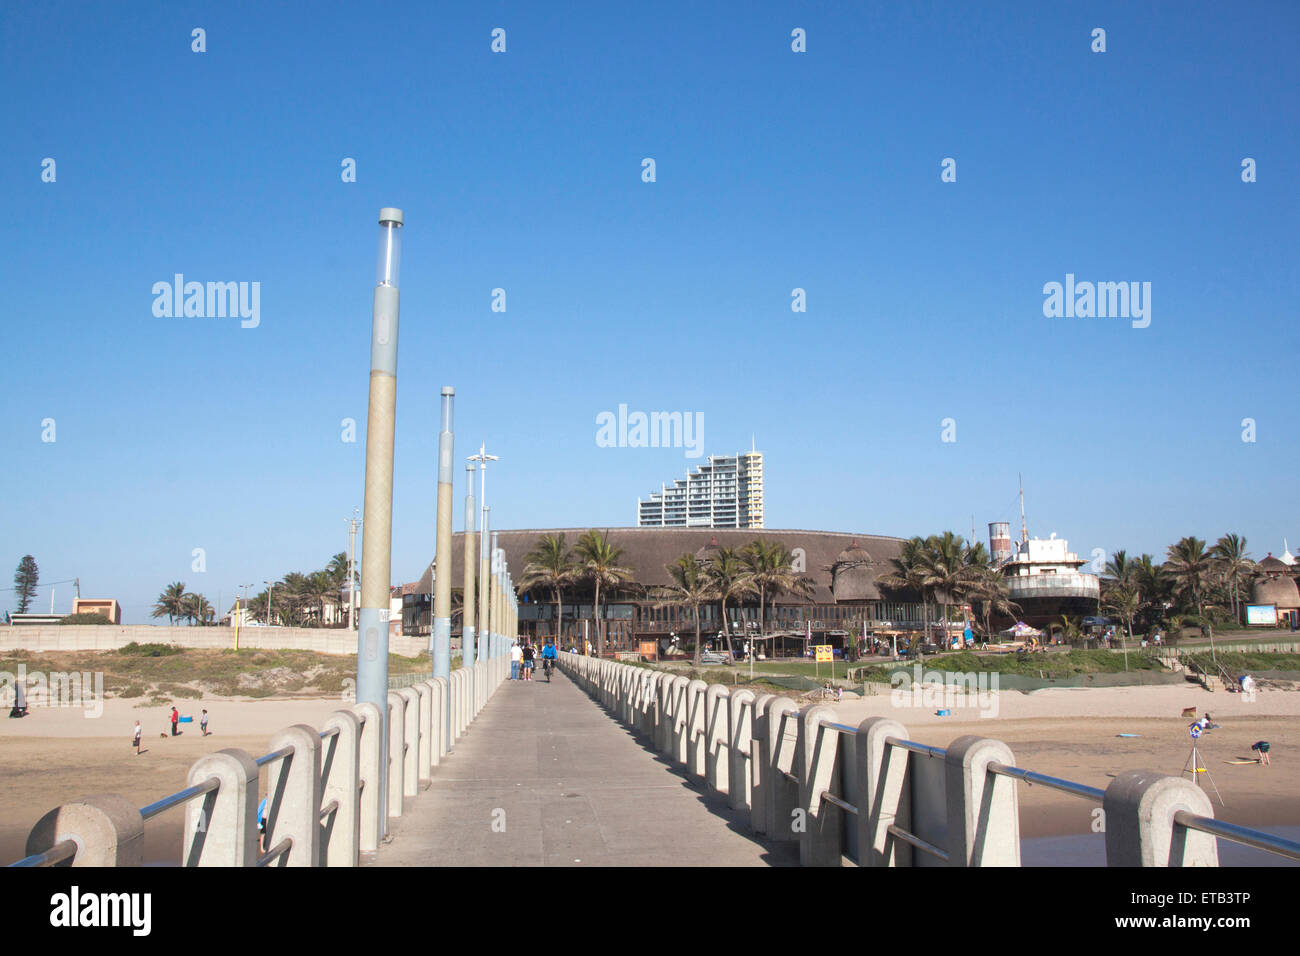 DURBAN, SOUTH AFRICA - JUNE 7, 2015: Ushaka Marine World viewed from Vetch's pier with many unknown people on - Stock Image